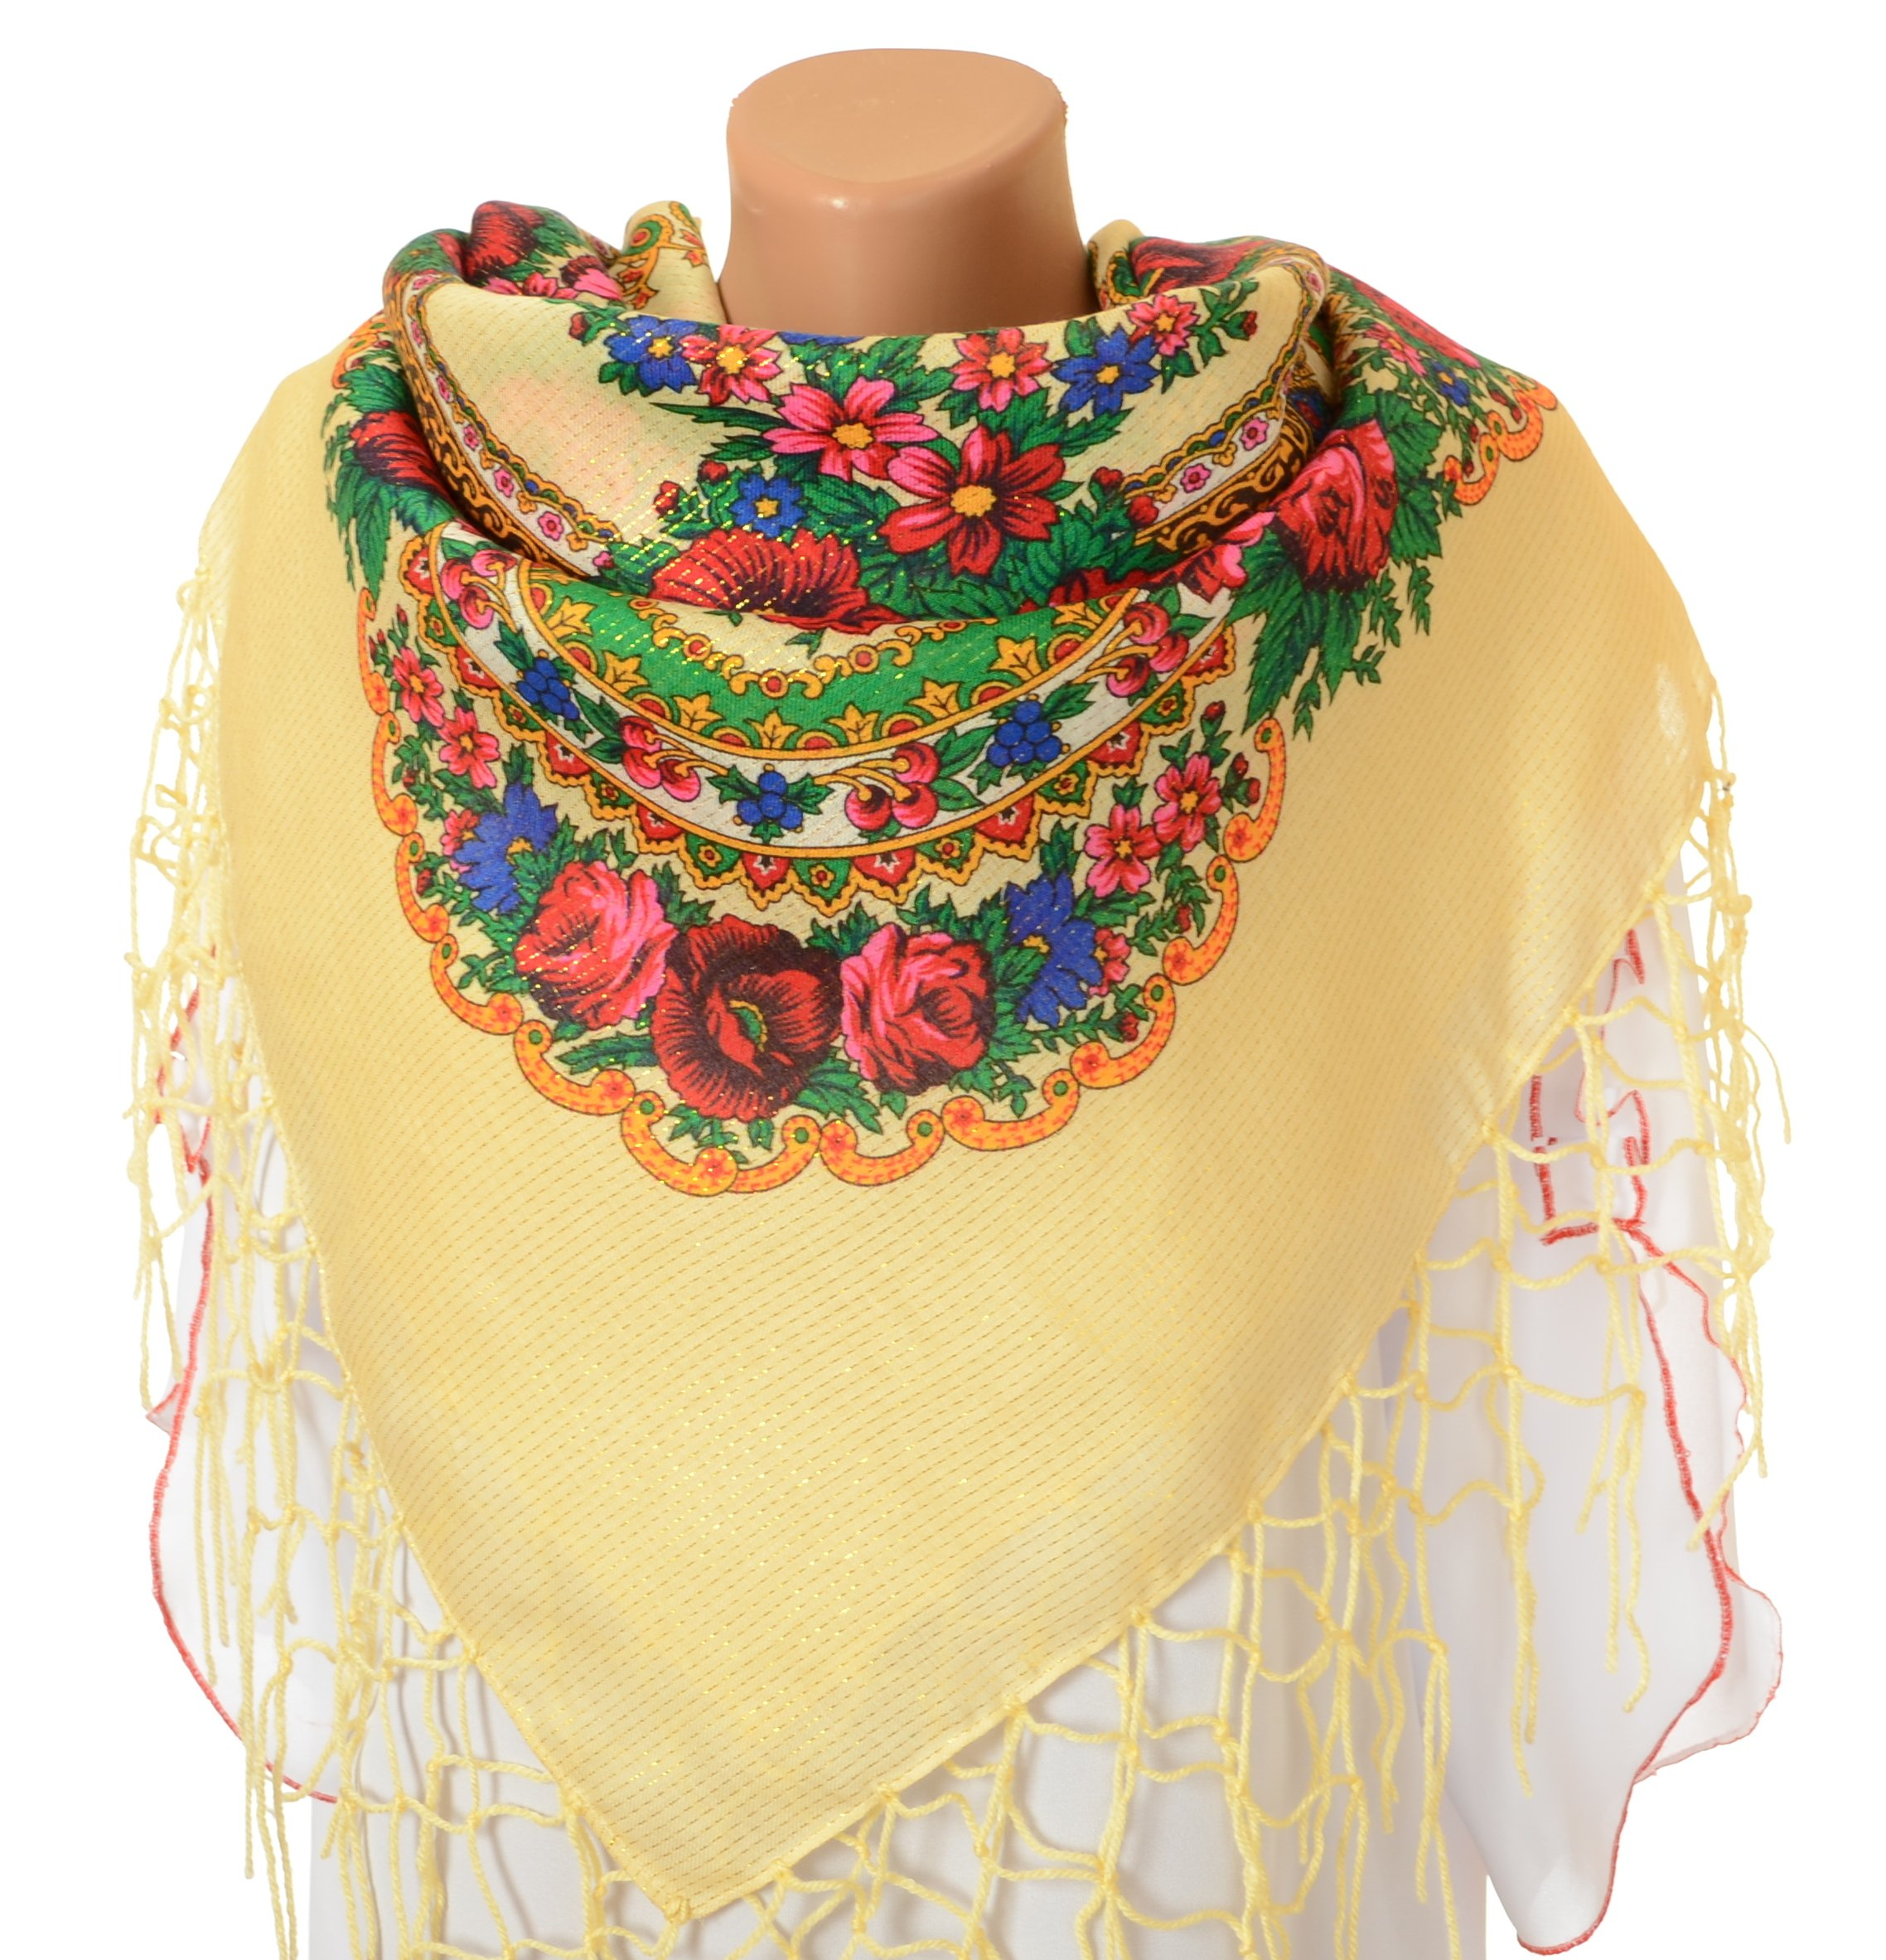 Scarf Wrap, Floral Shawl for Women, Traditional Ukrainian Polish Russian Style Neck Scarf, Fringed Vintage Head Scarf, A Thoughtful Birthday, Anniversary or Mother's Day Gift, 59 X 59 Inches